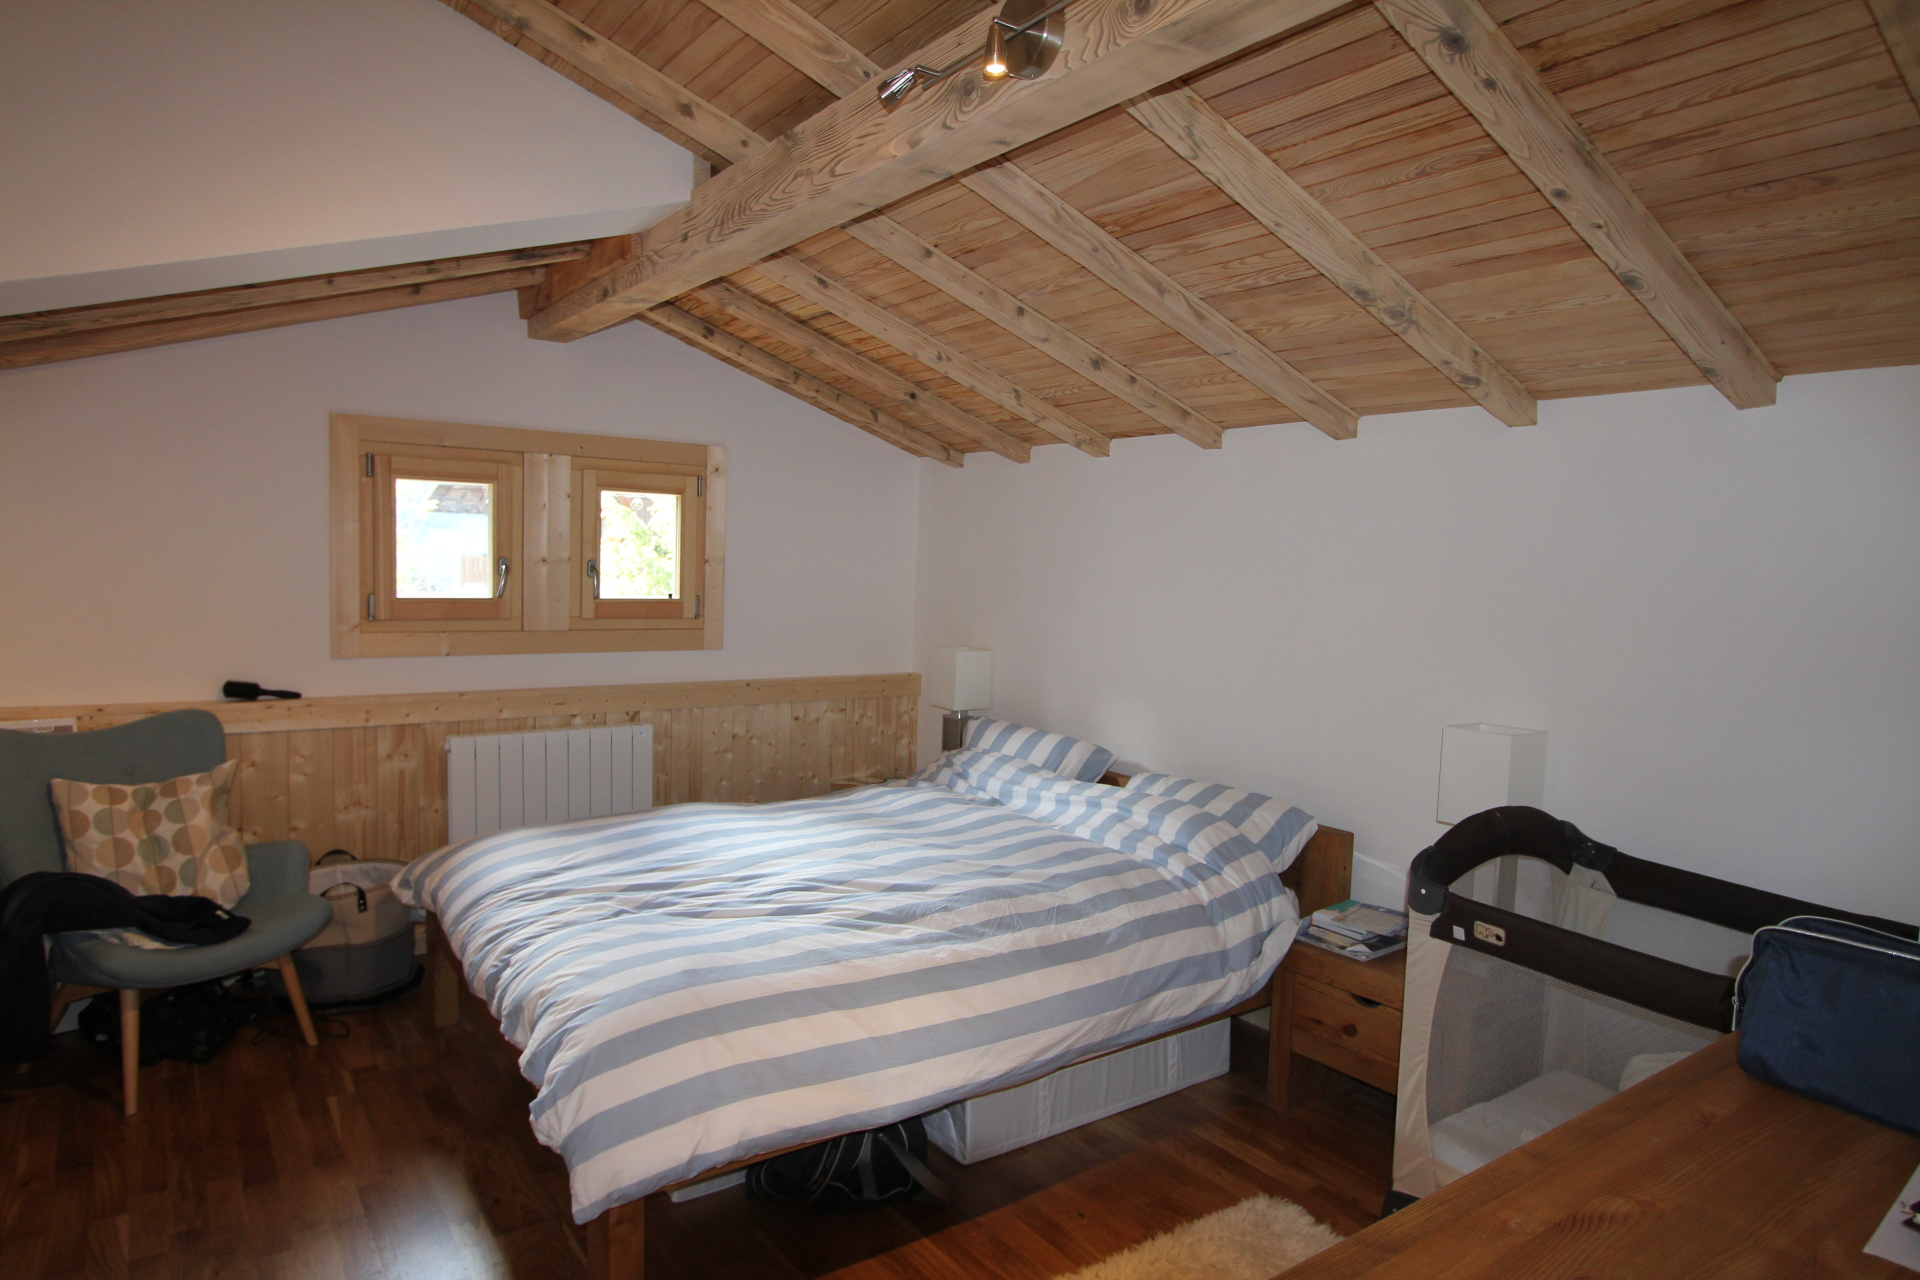 Chalet bedroom | Renovation Solutions